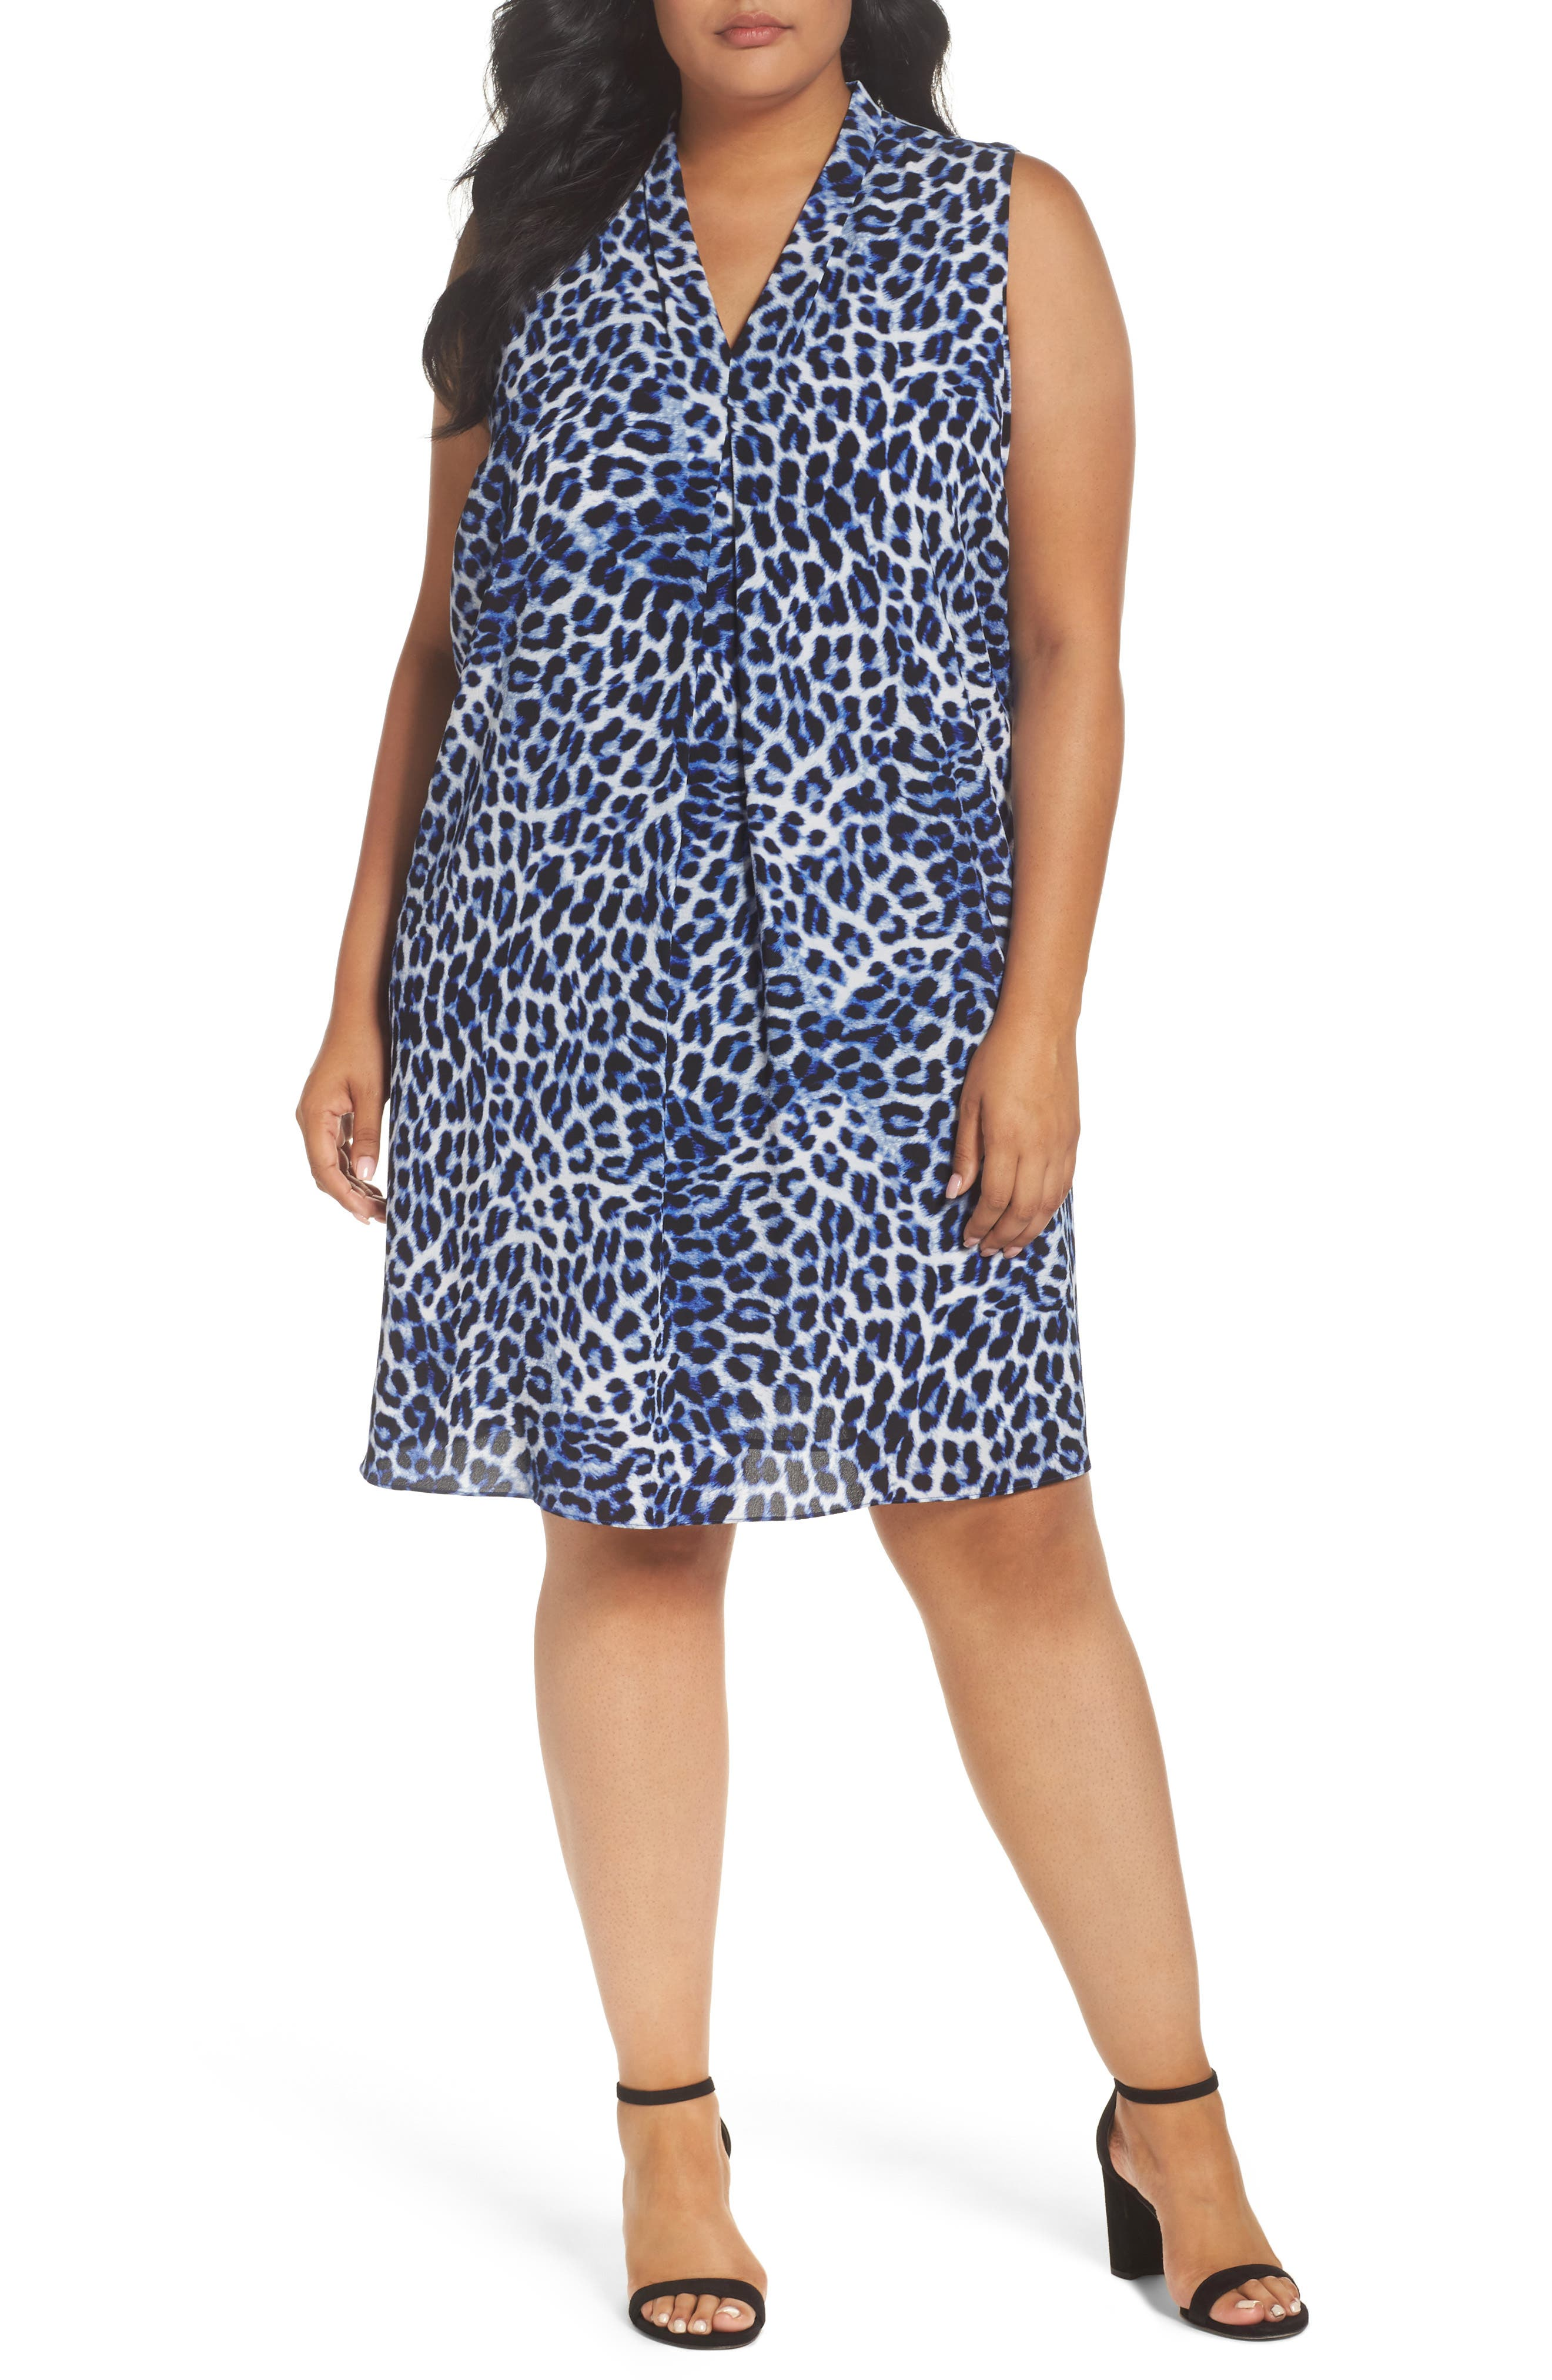 Vince Camuto Leopard Song Inverted Pleat Shift Dress (Plus Size)